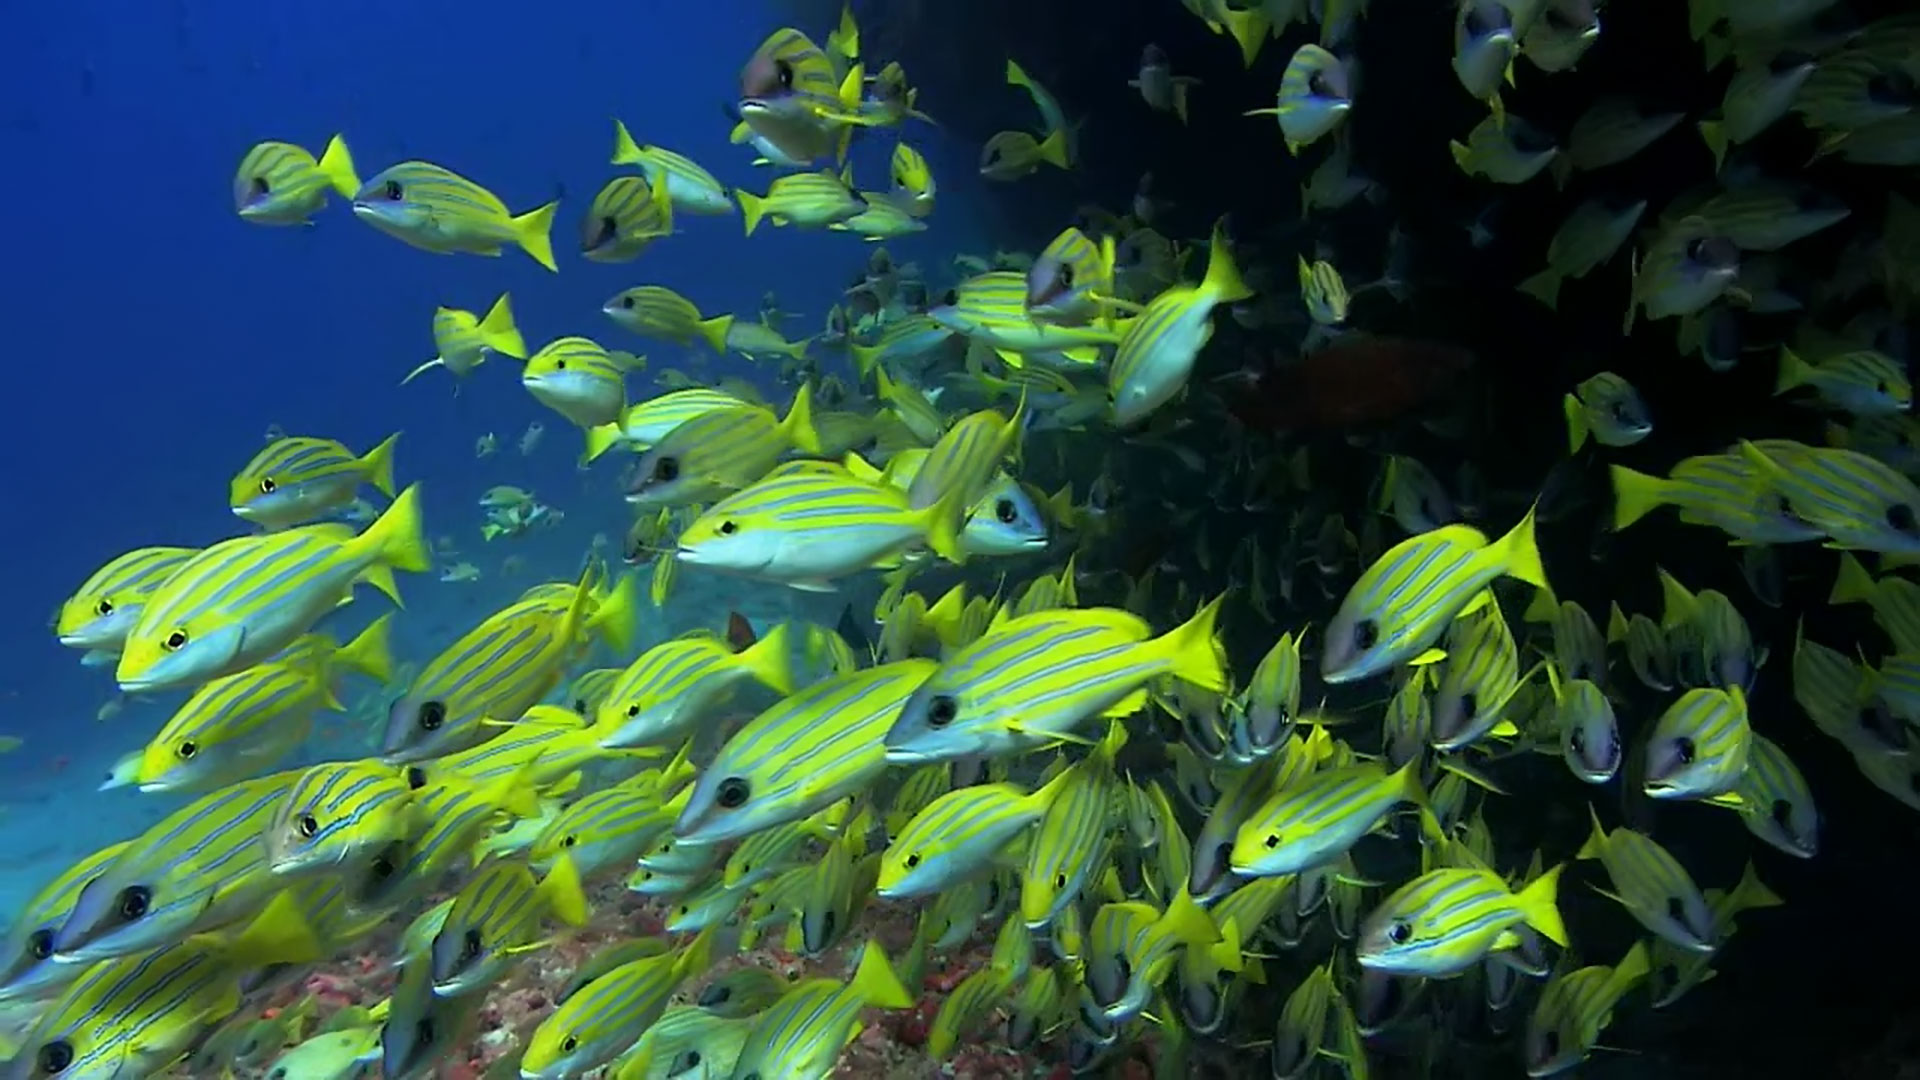 video wallpaper yellow fish